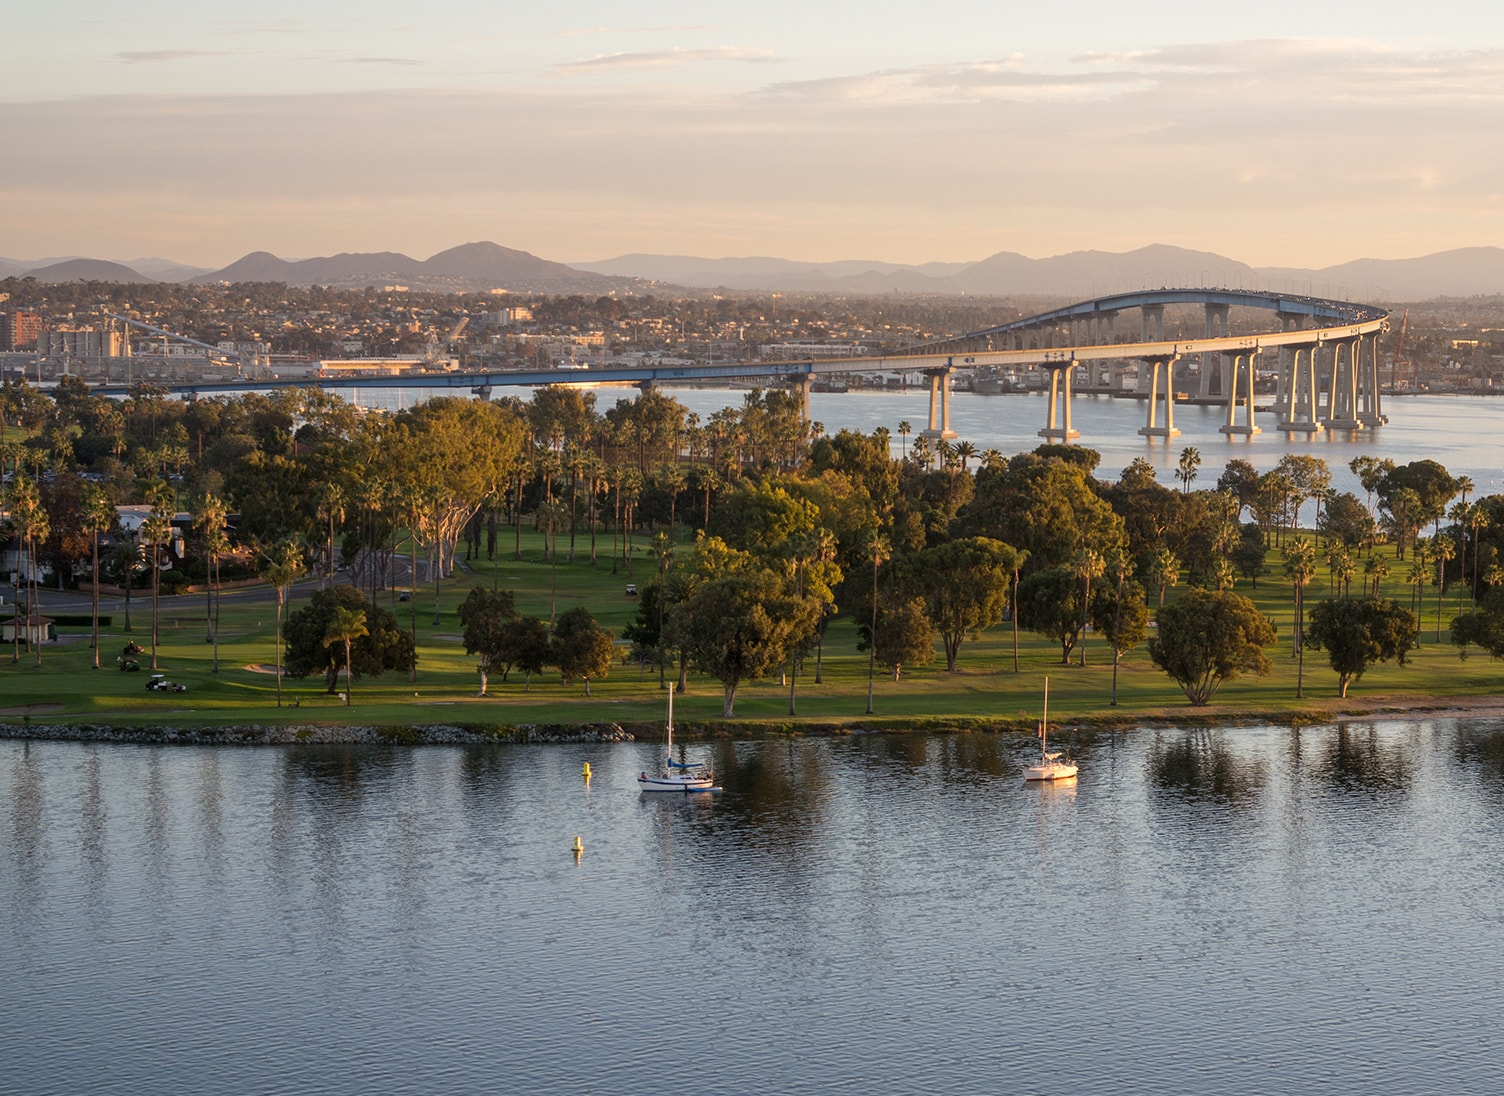 coronado, california skyline and bridge